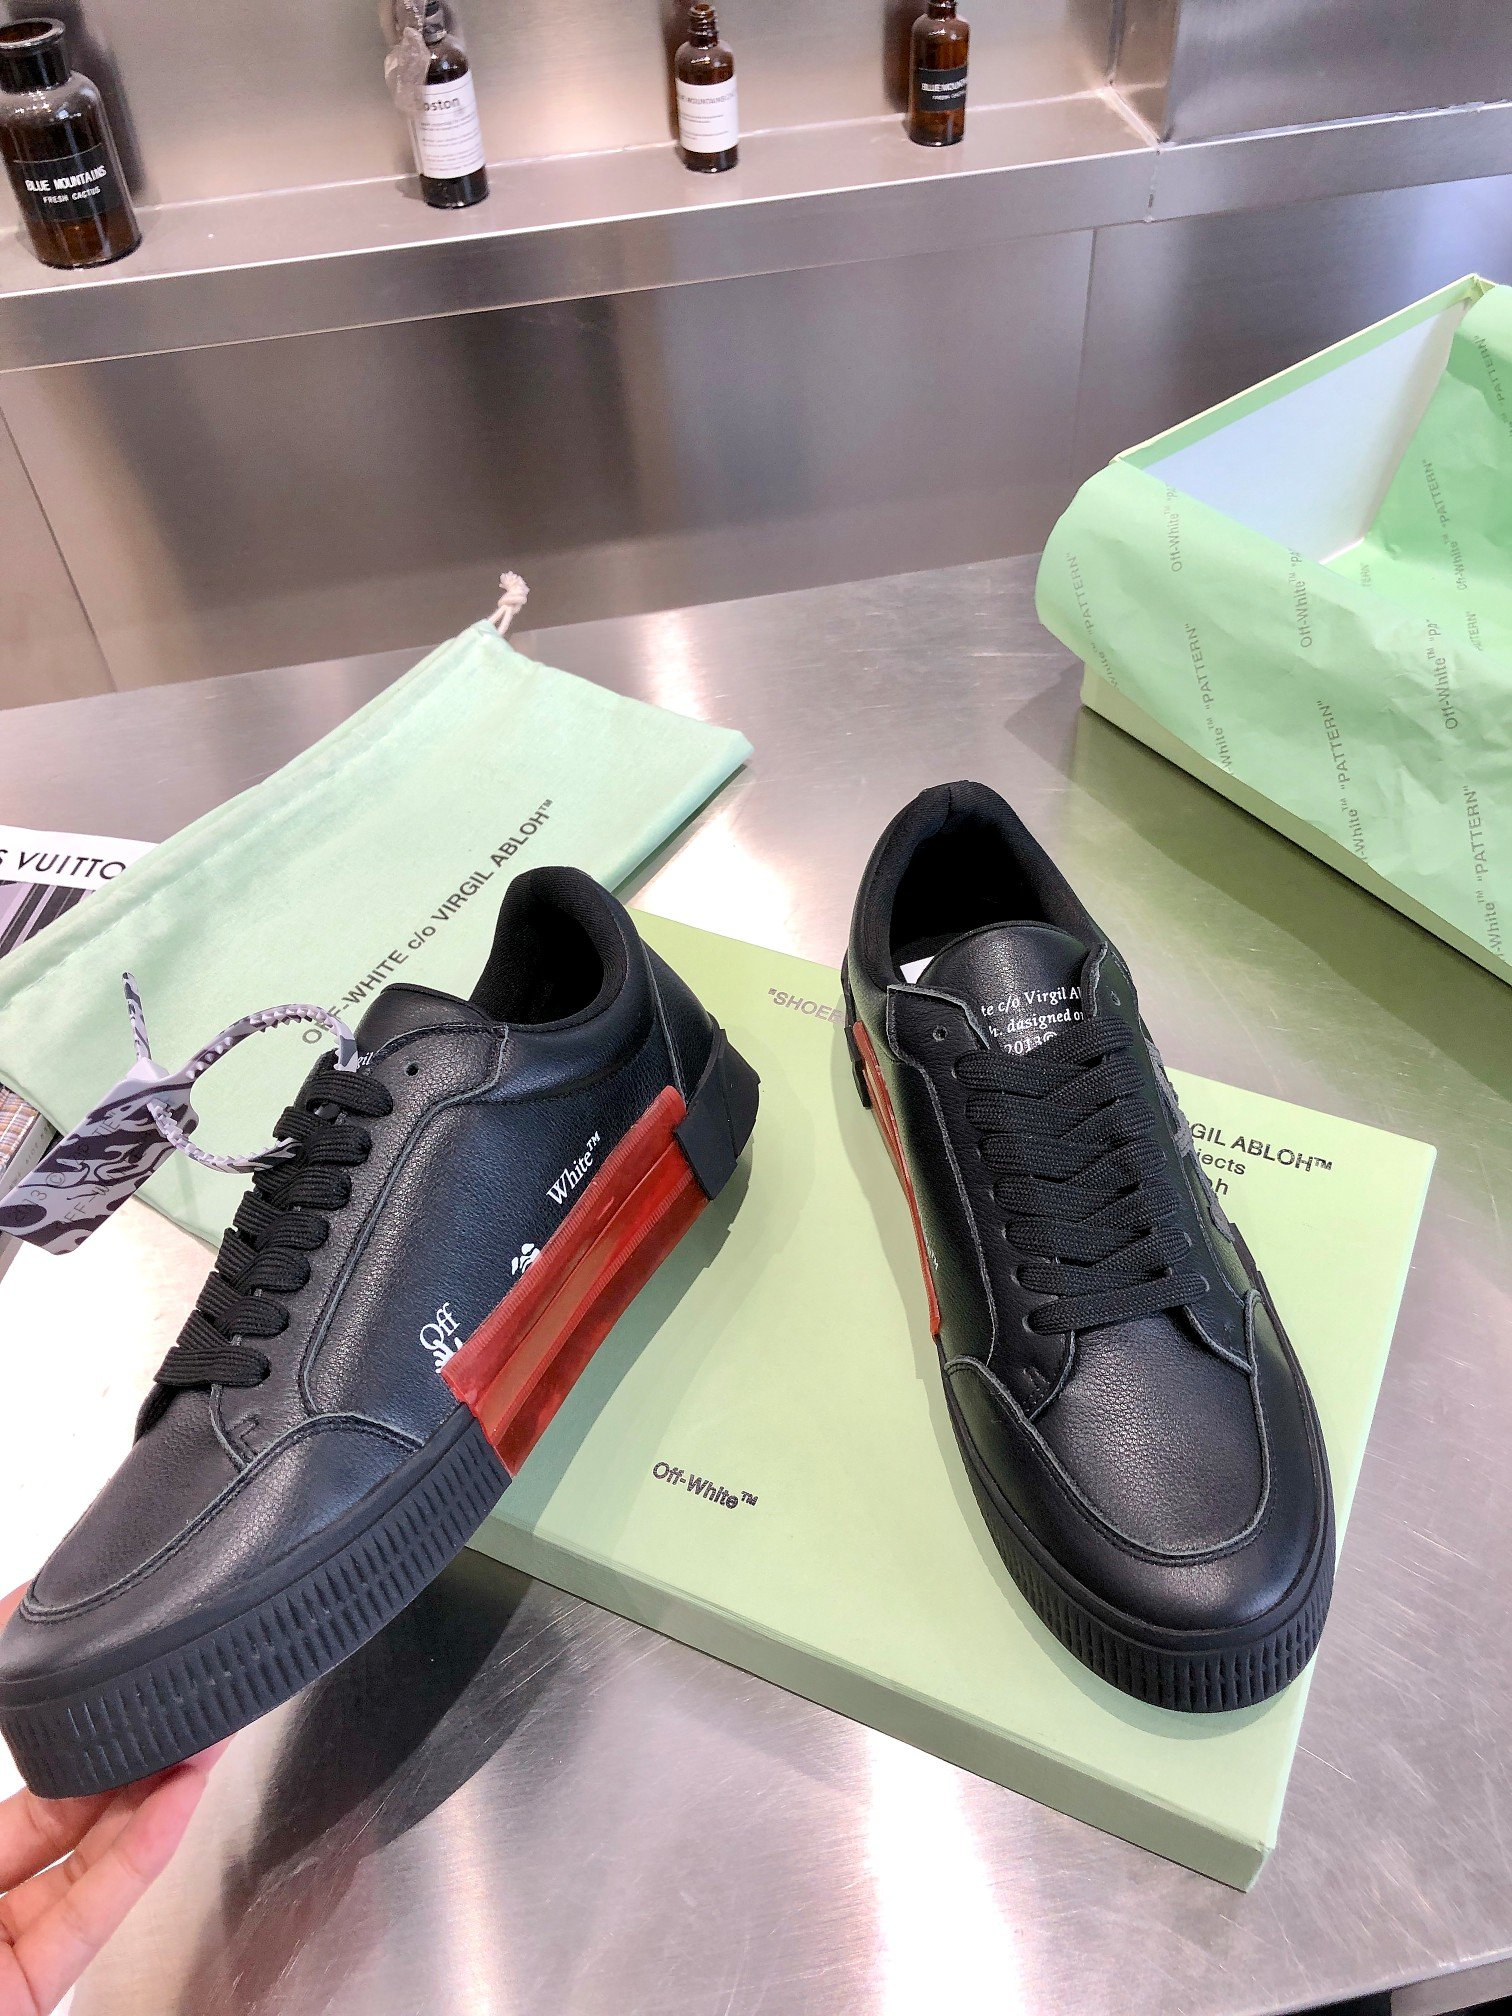 2021 Autumn New Genuine Leather Black Sneakers Men Women Arrow Skater Shoes Brand Off White Leisure Shoes Woman Zapatos Hombre